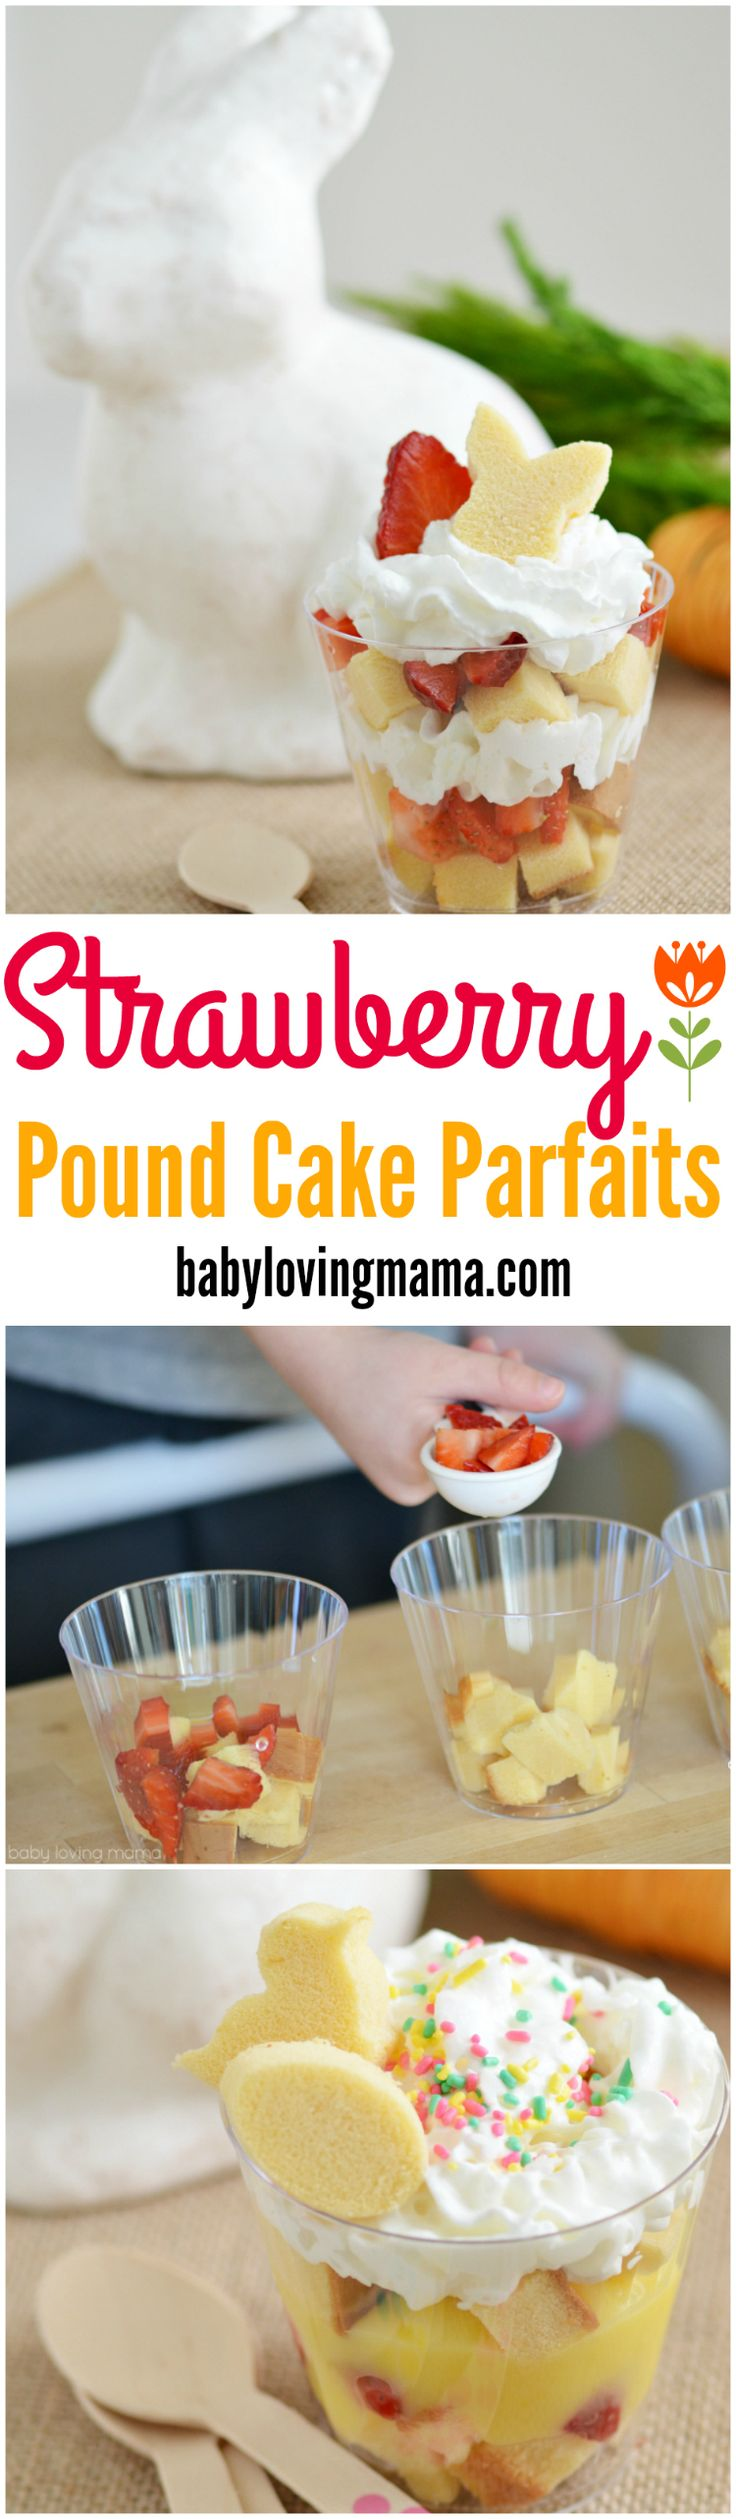 Strawberry Pound Cake Parfaits: These easy strawberry pound cake parfaits are a great spring or Easter dessert featuring cake shapes, strawberries and whipped cream.